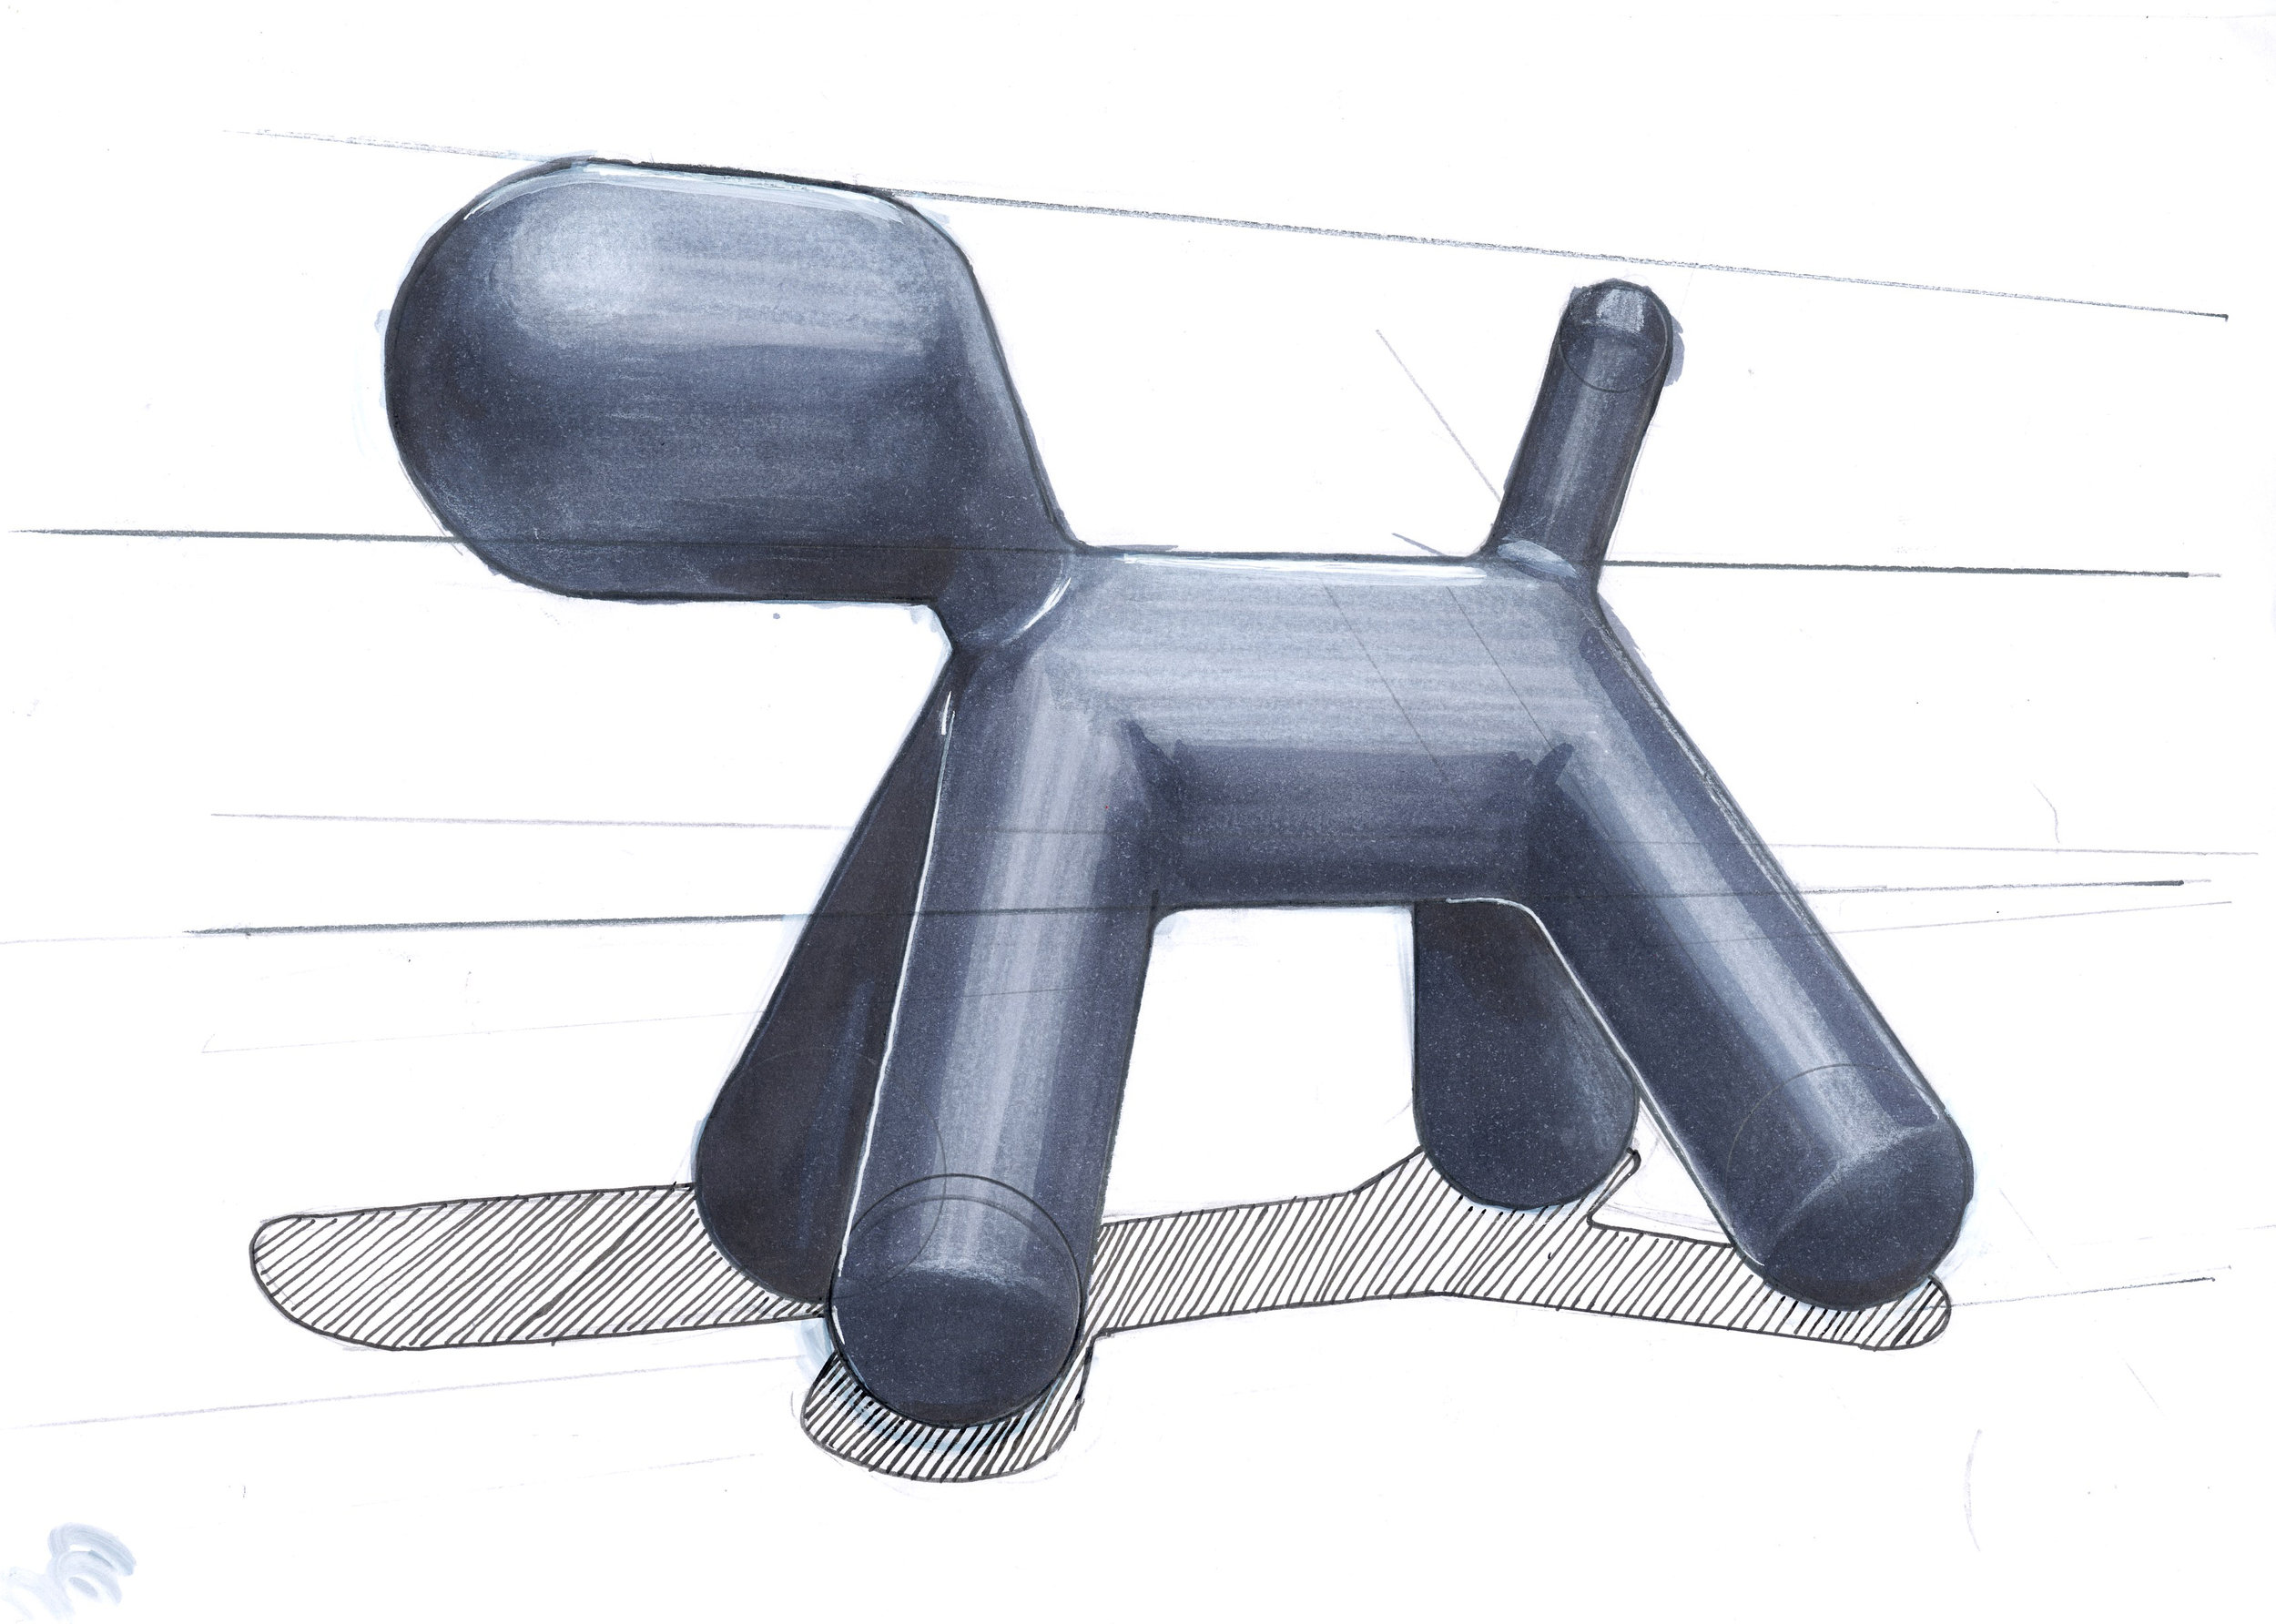 Sketch of the Puppy chair by Eero Aarnio for Magis Design.Marker, pen and pencil.